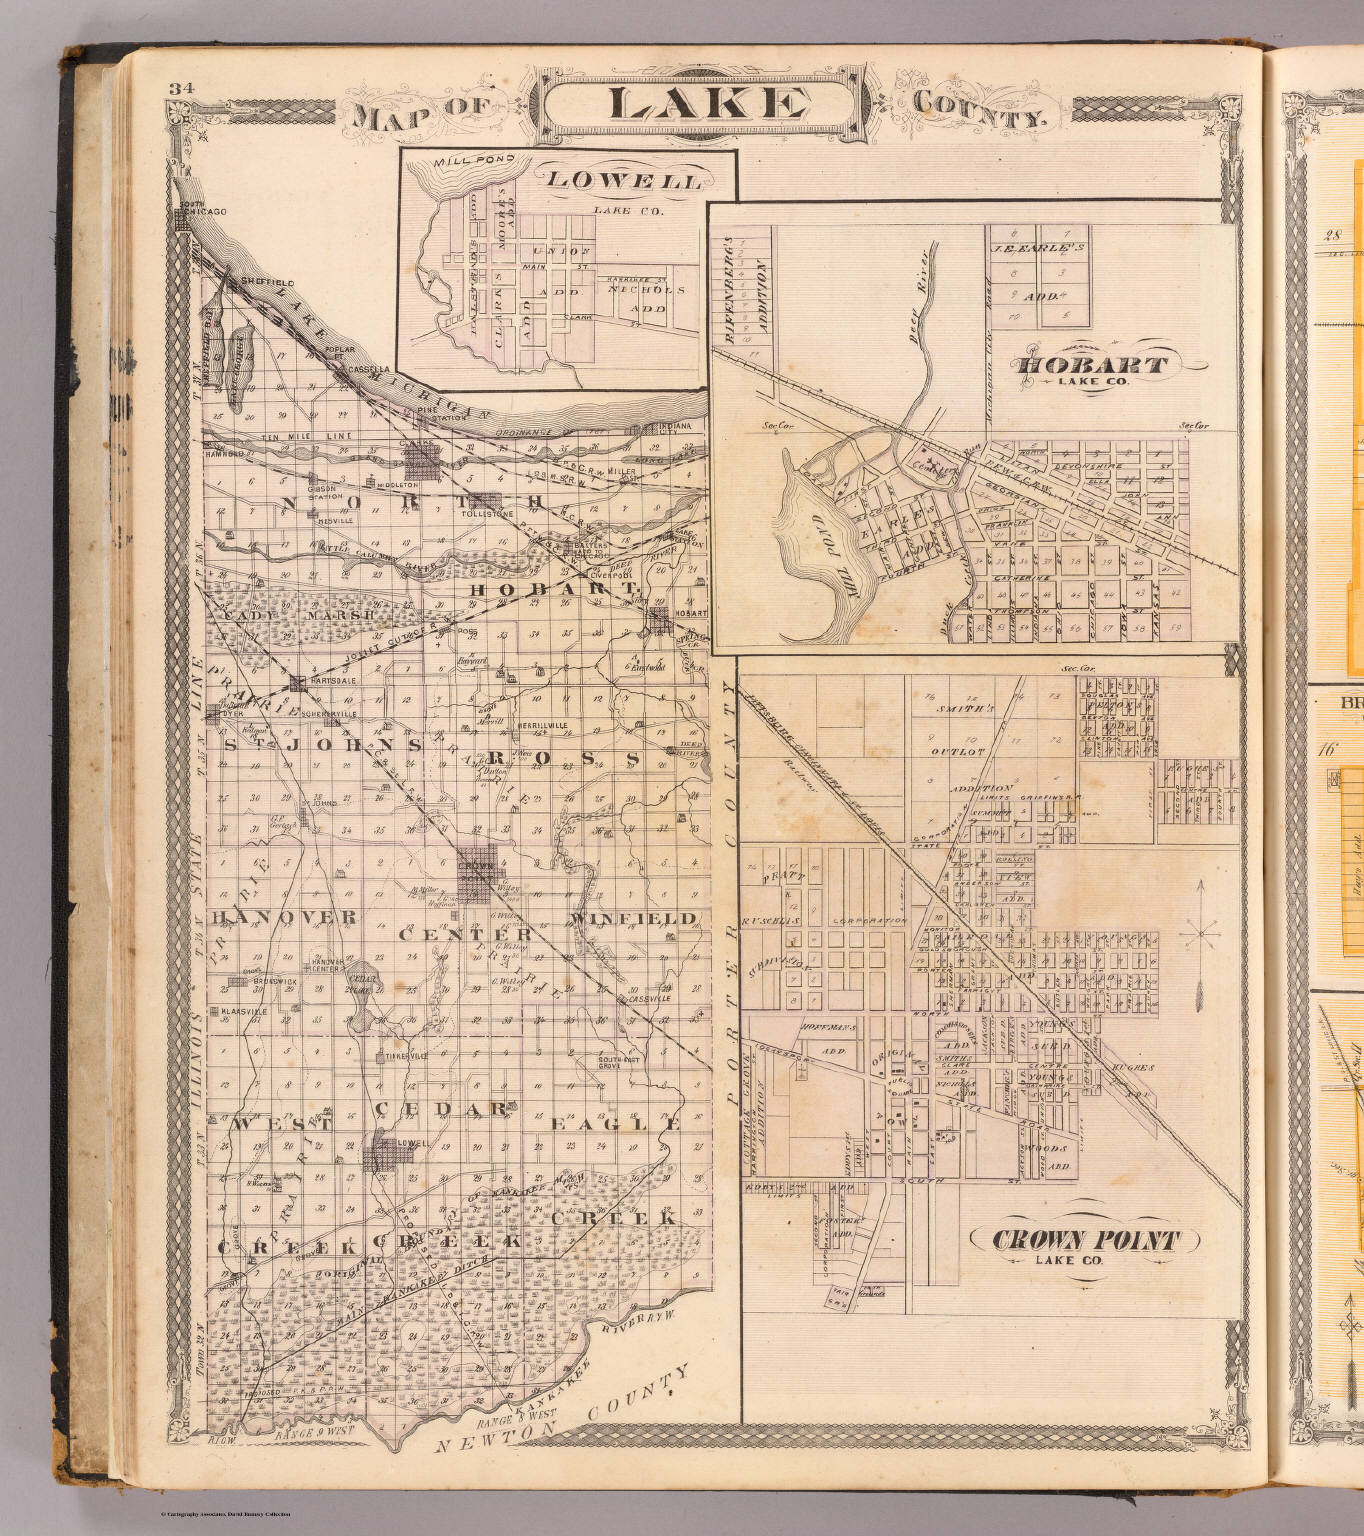 Map Of Lake County With Lowell Hobart Crown Point David